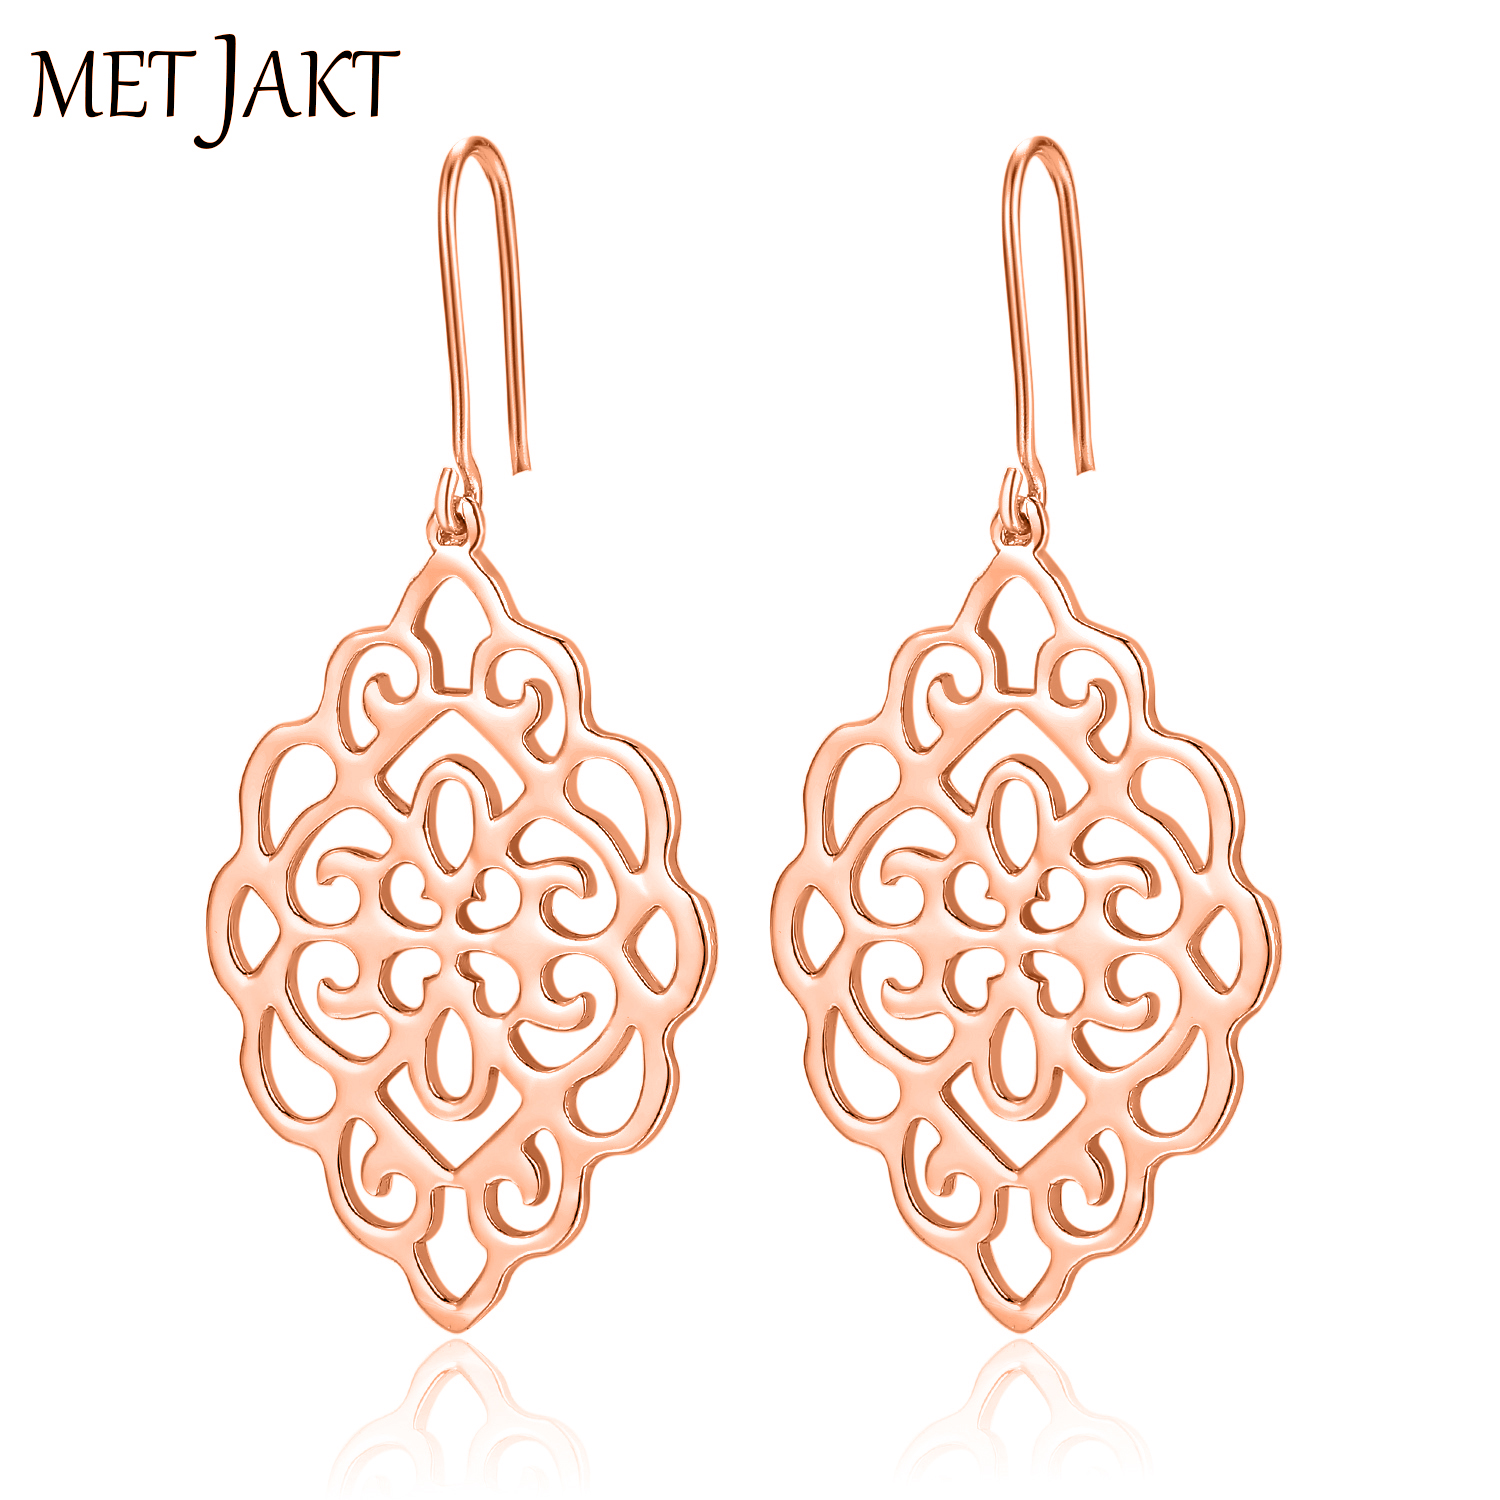 MetJakt Vintage Elegant Earrings Solid 925 Sterling Silver with 14k Rose Gold Plated Jewelry for Women's Party Wedding Jewelry yoursfs dangle earrings with long chain austria crystal jewelry gift 18k rose gold plated